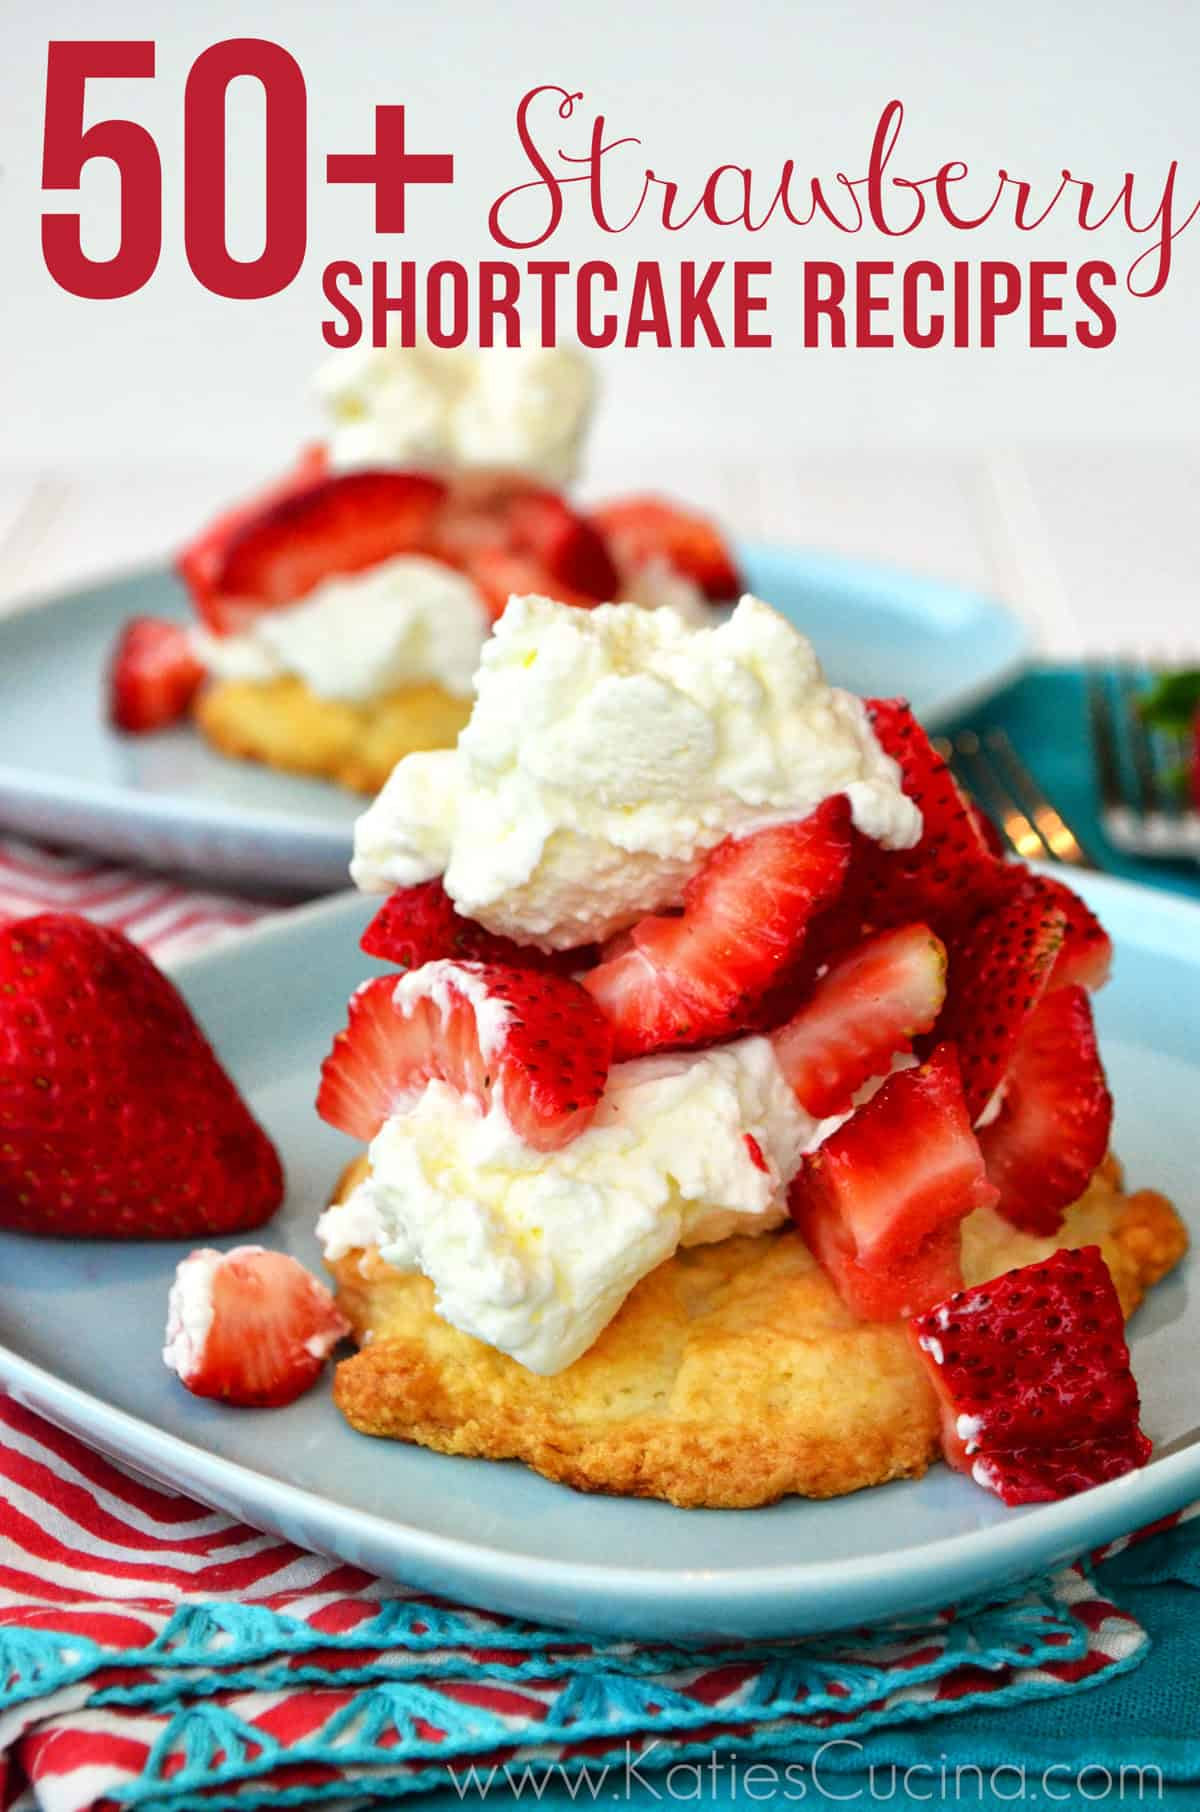 50 Strawberry Shortcake Recipes